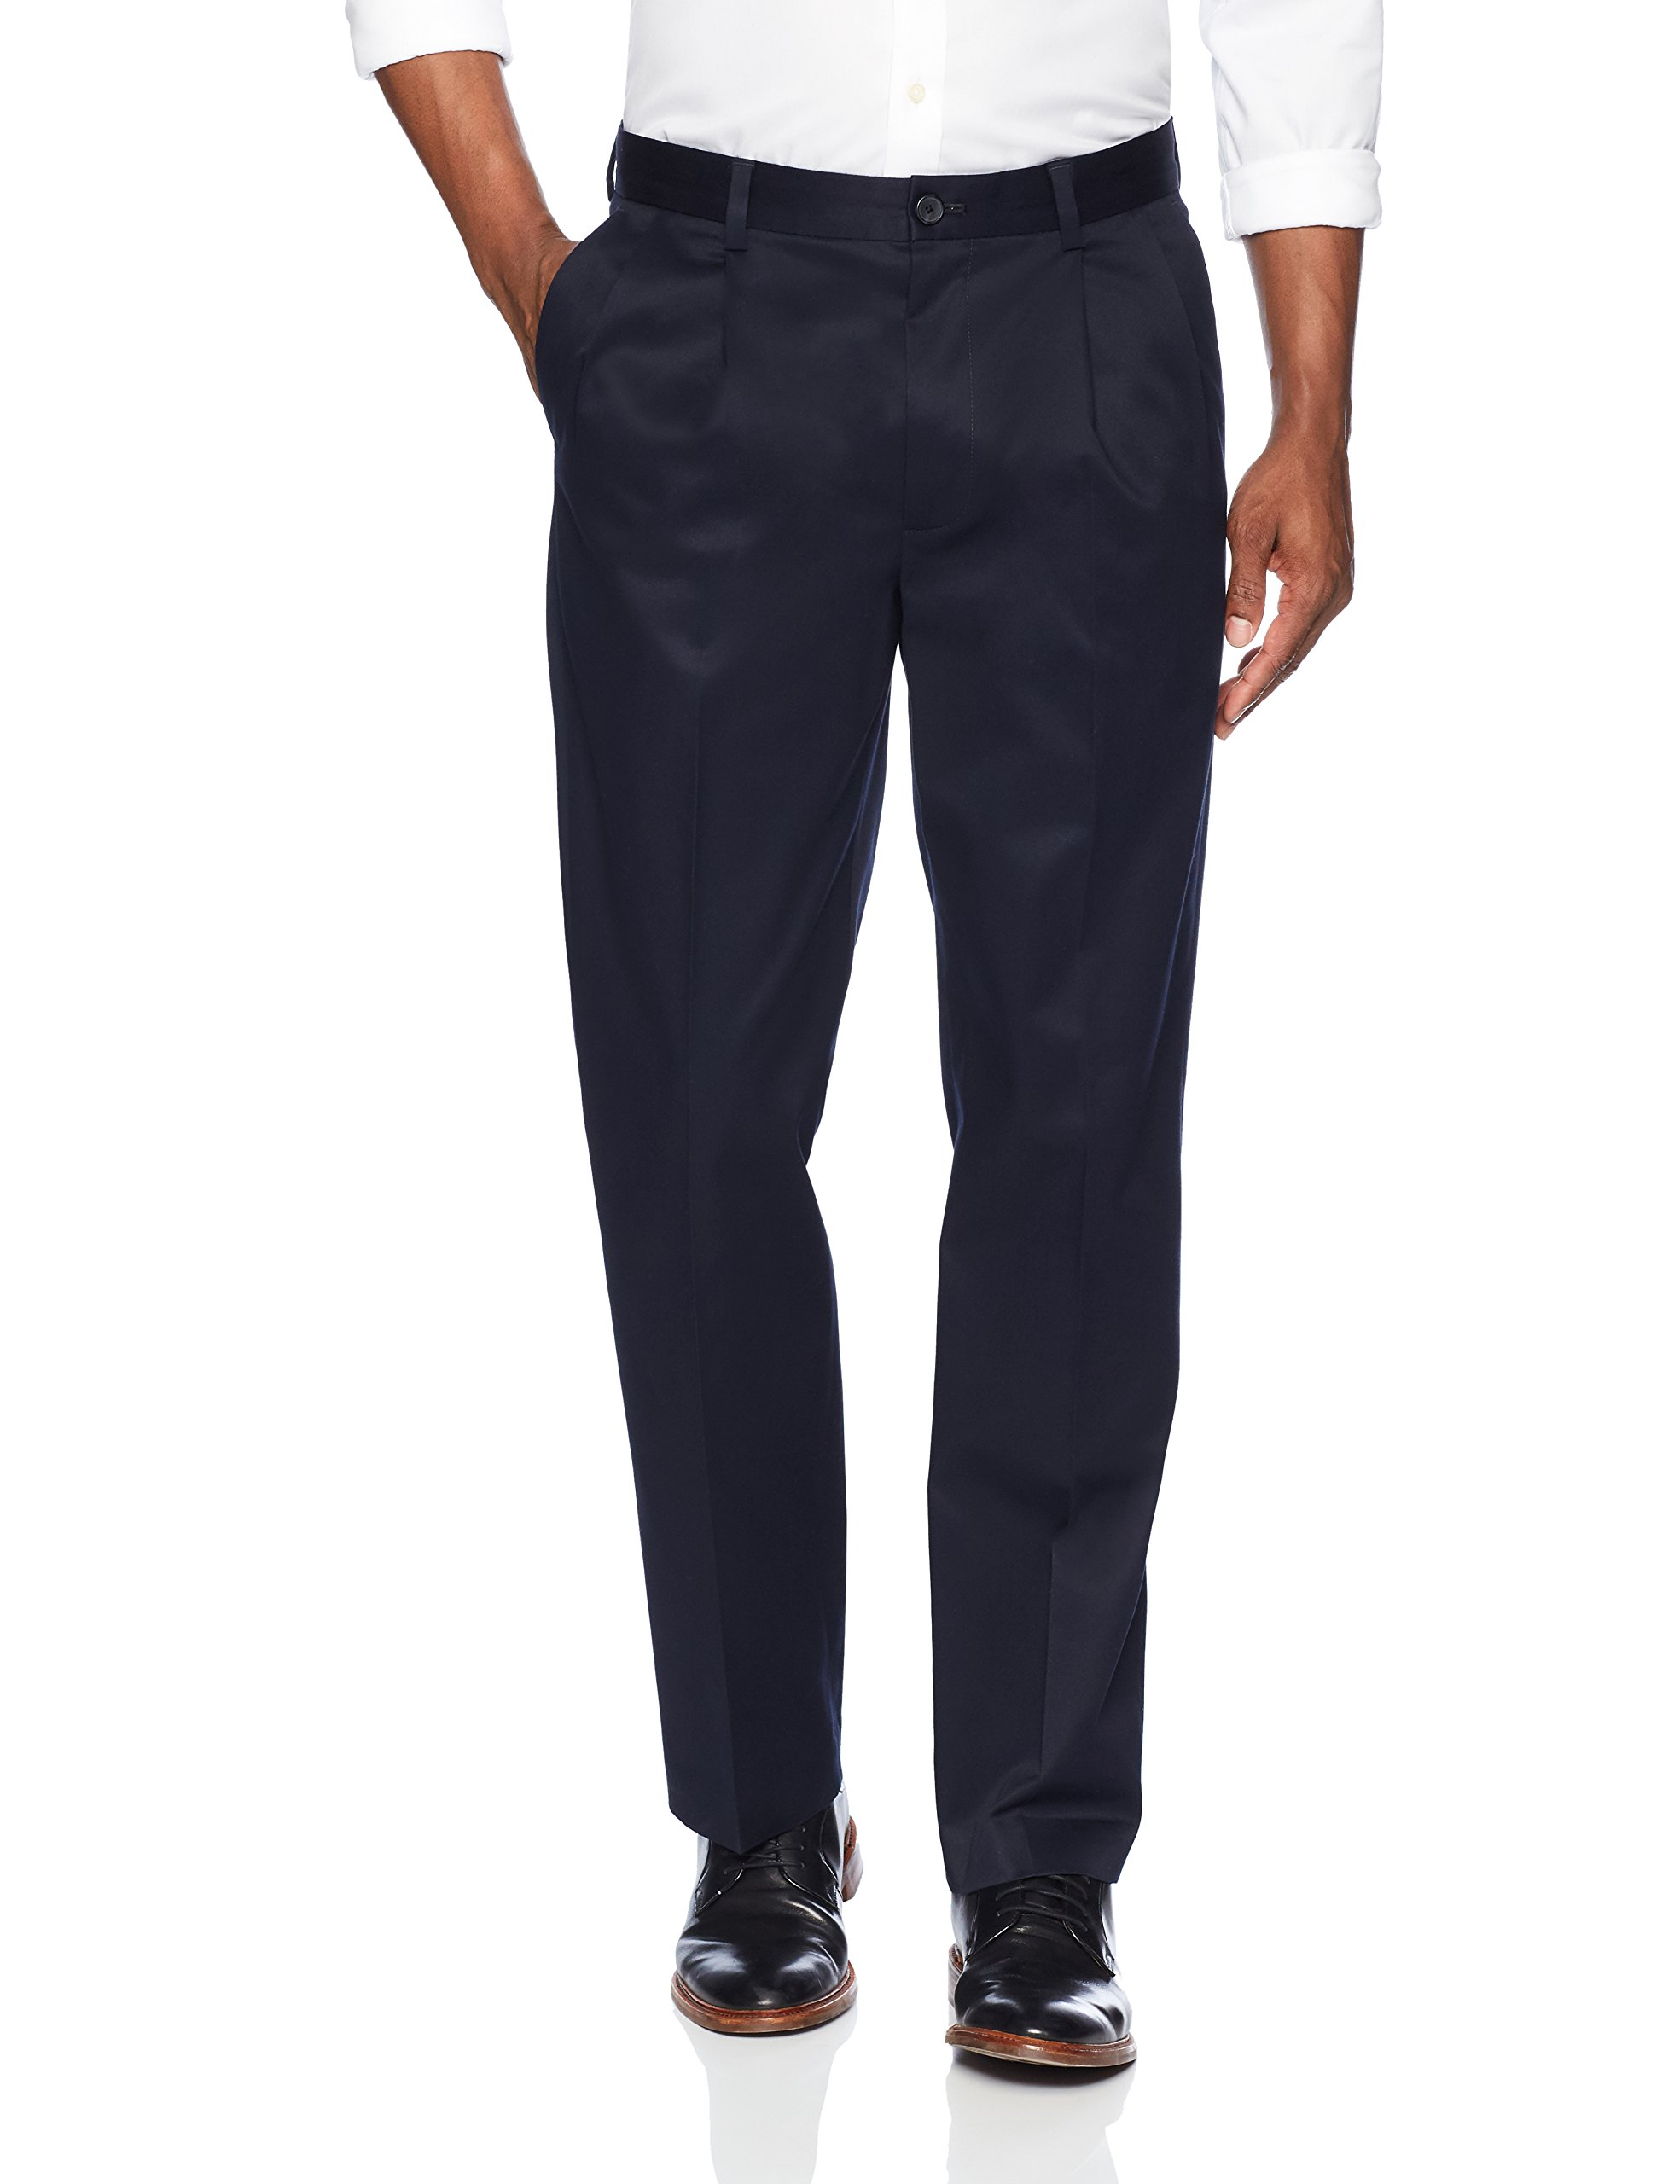 Buttoned Down Men's Relaxed Fit Pleated Stretch Non-Iron Dress Chino Pant, Navy, 36W x 34L